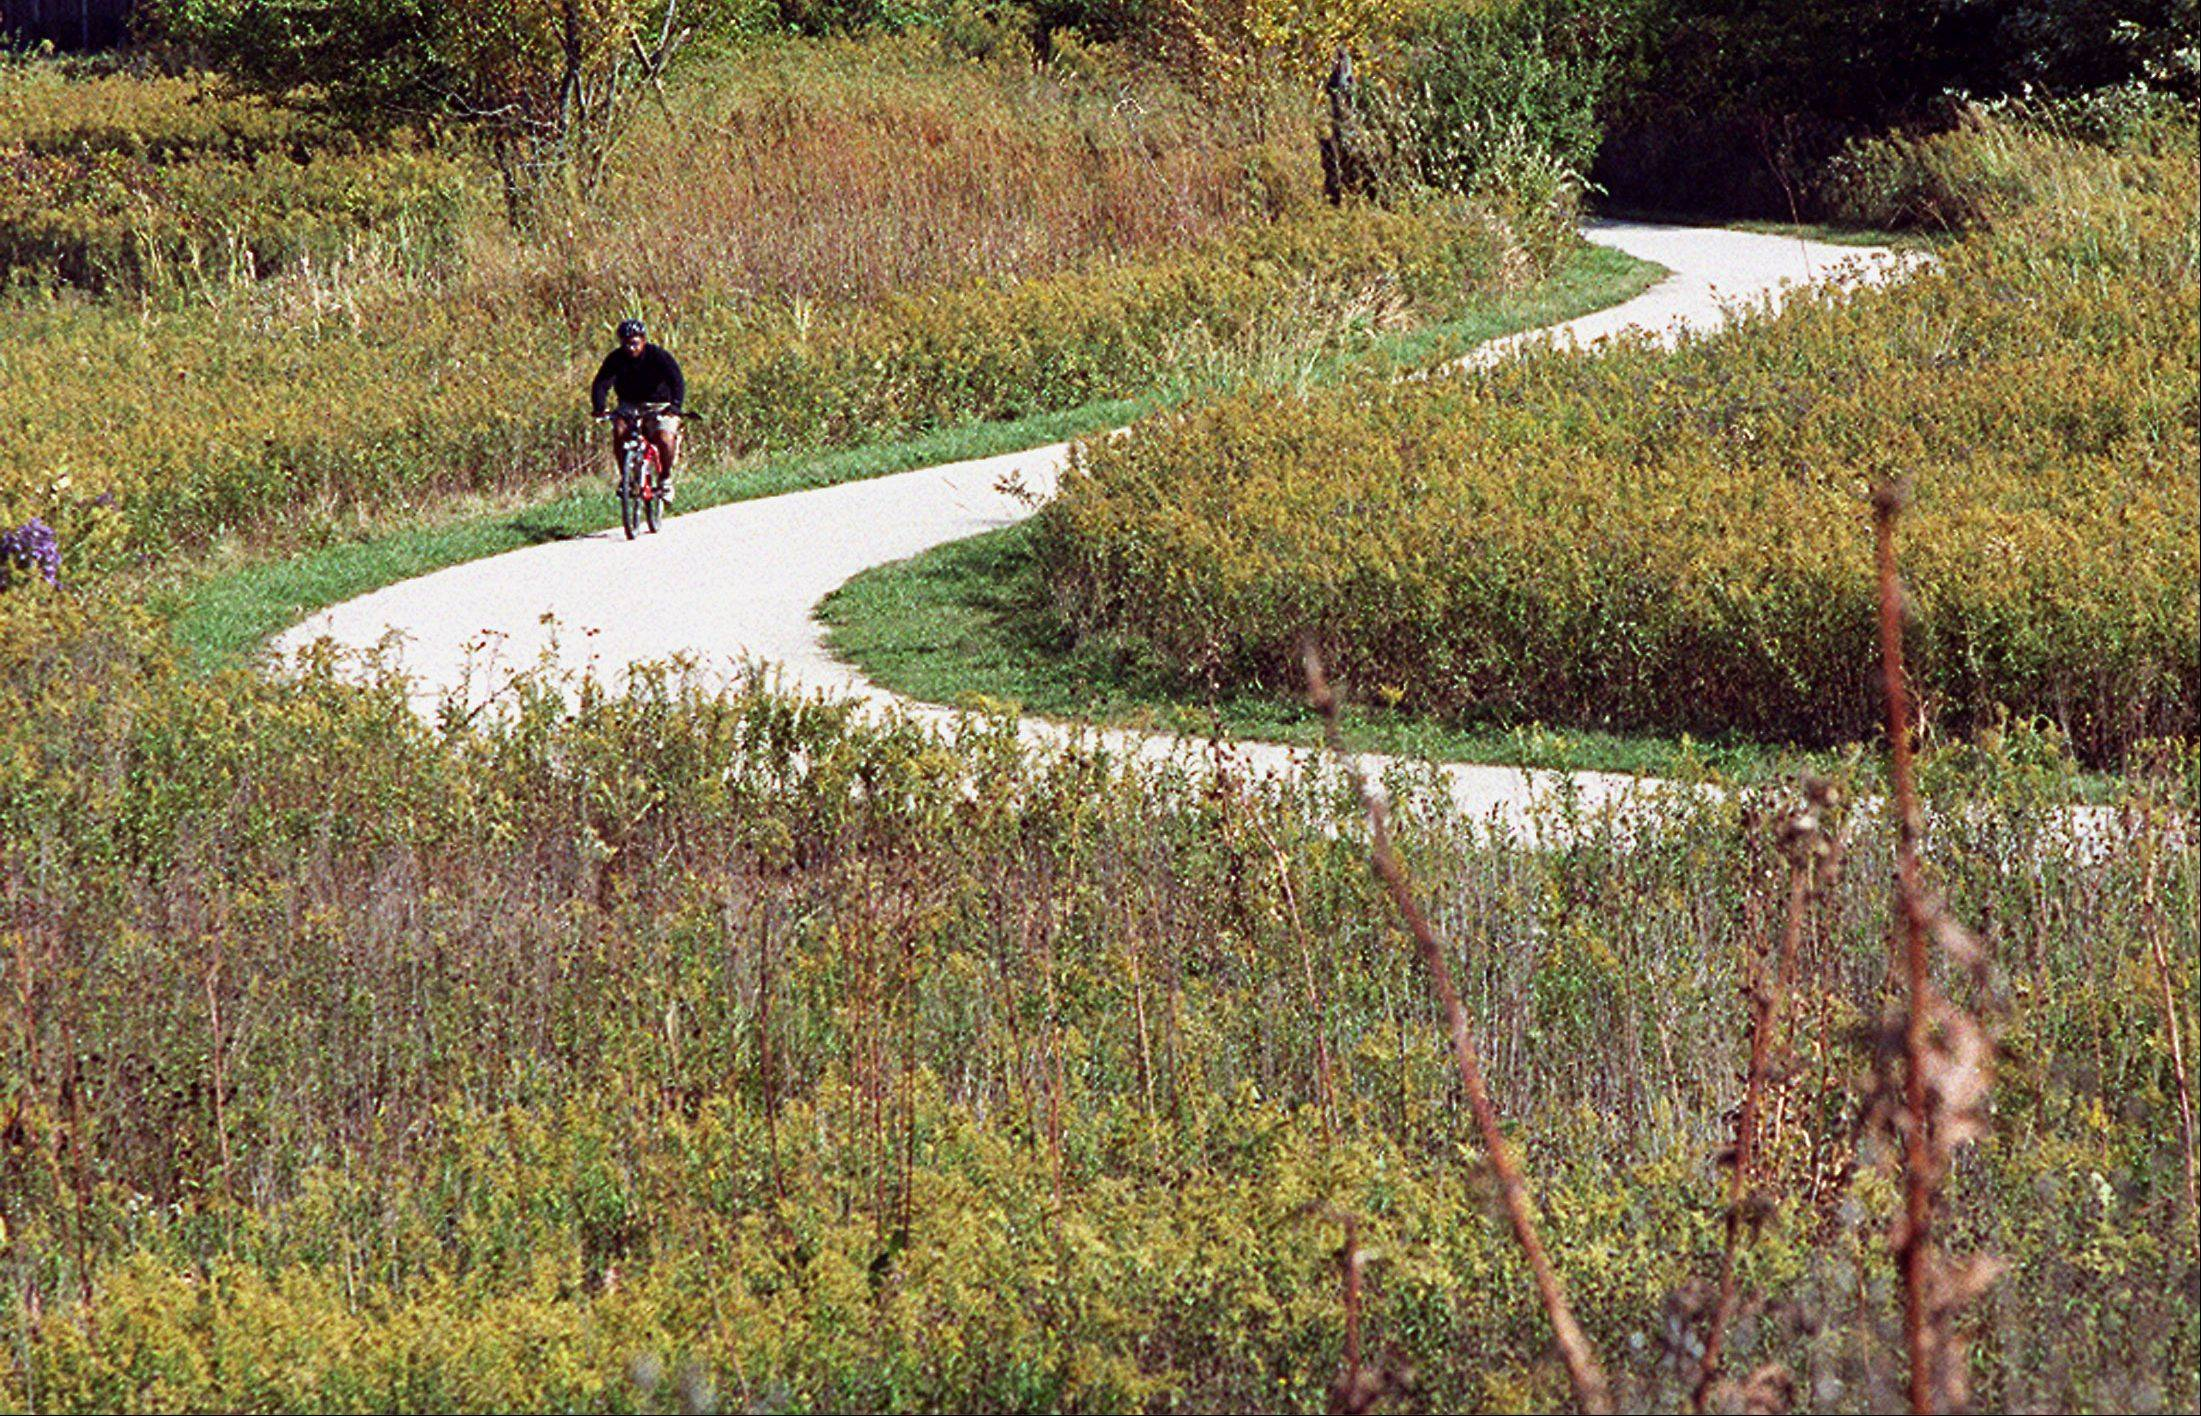 Part of Springbrook Prairie Forest Preserve in Naperville is one of two areas up for Illinois Nature Preserve status. If granted, the designation would offer another layer of protection to the natural areas.